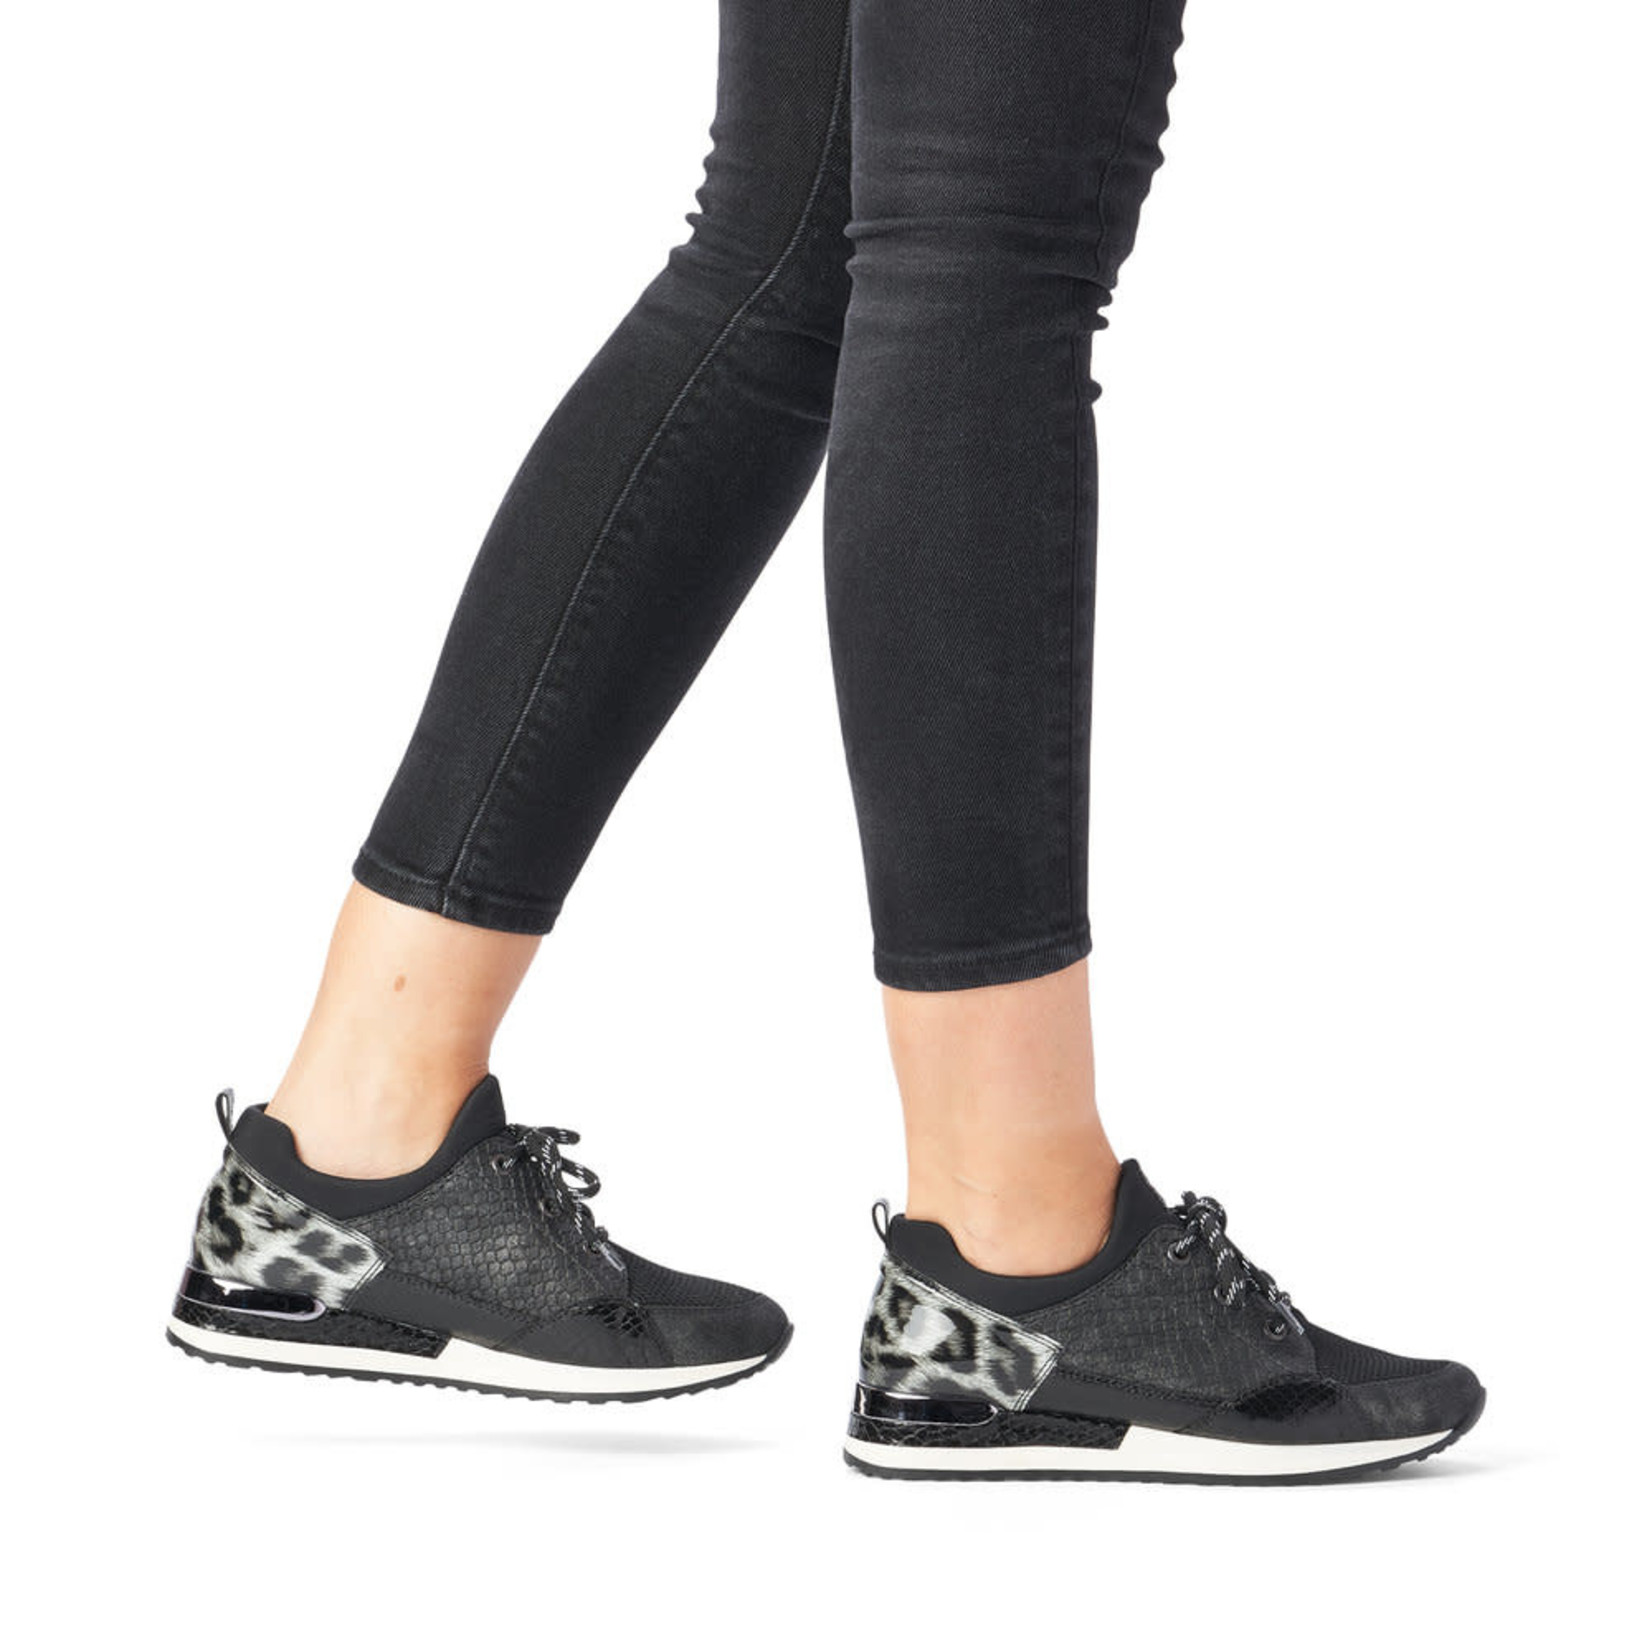 Remonte Remonte R2503-45 only size 36